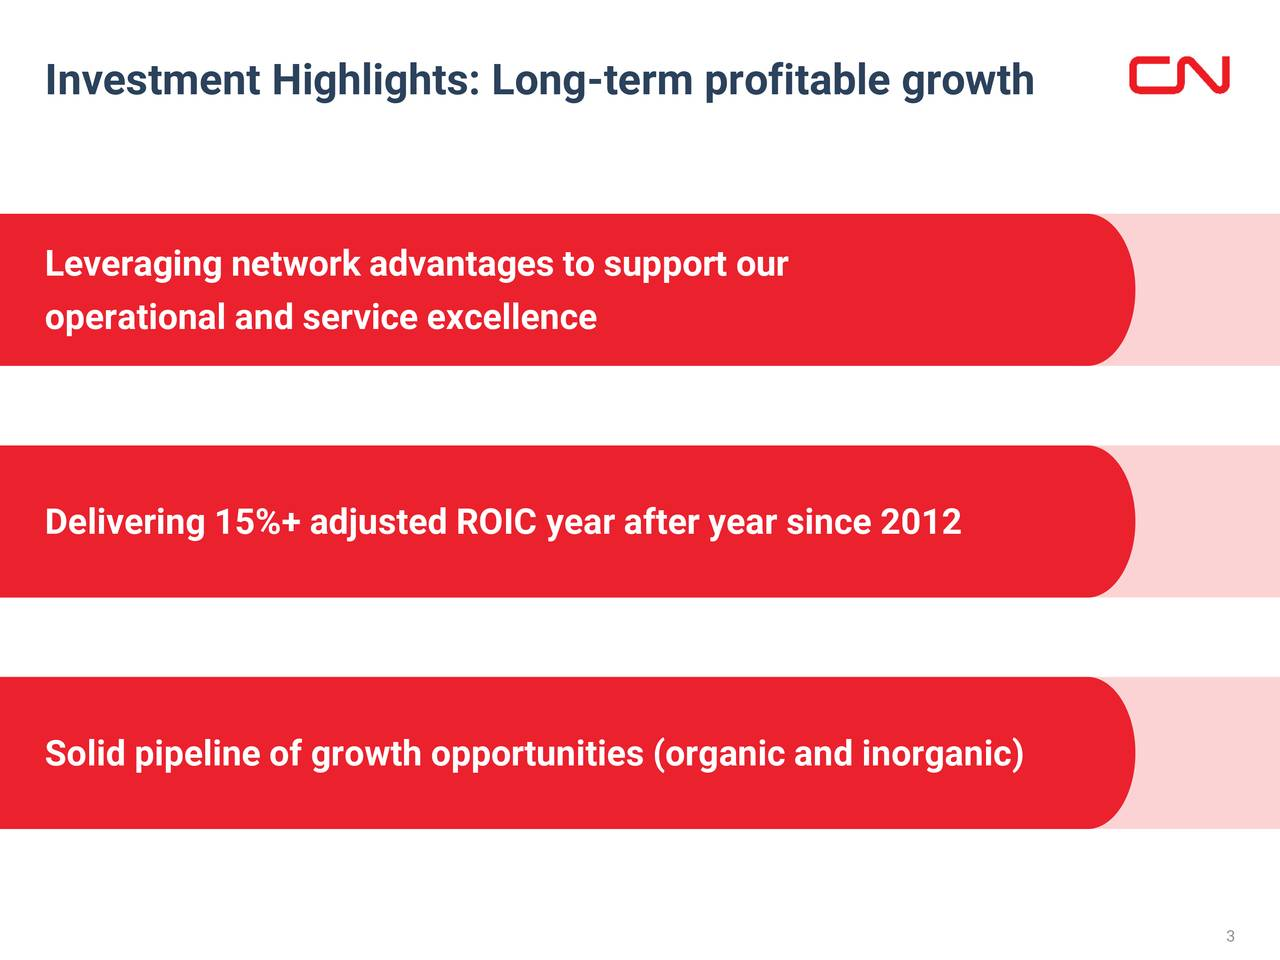 Leveraging network advantages to support our operational and service excellence Delivering 15%+ adjusted ROIC year after year since 2012 Solid pipeline of growth opportunities (organic and inorganic) 3